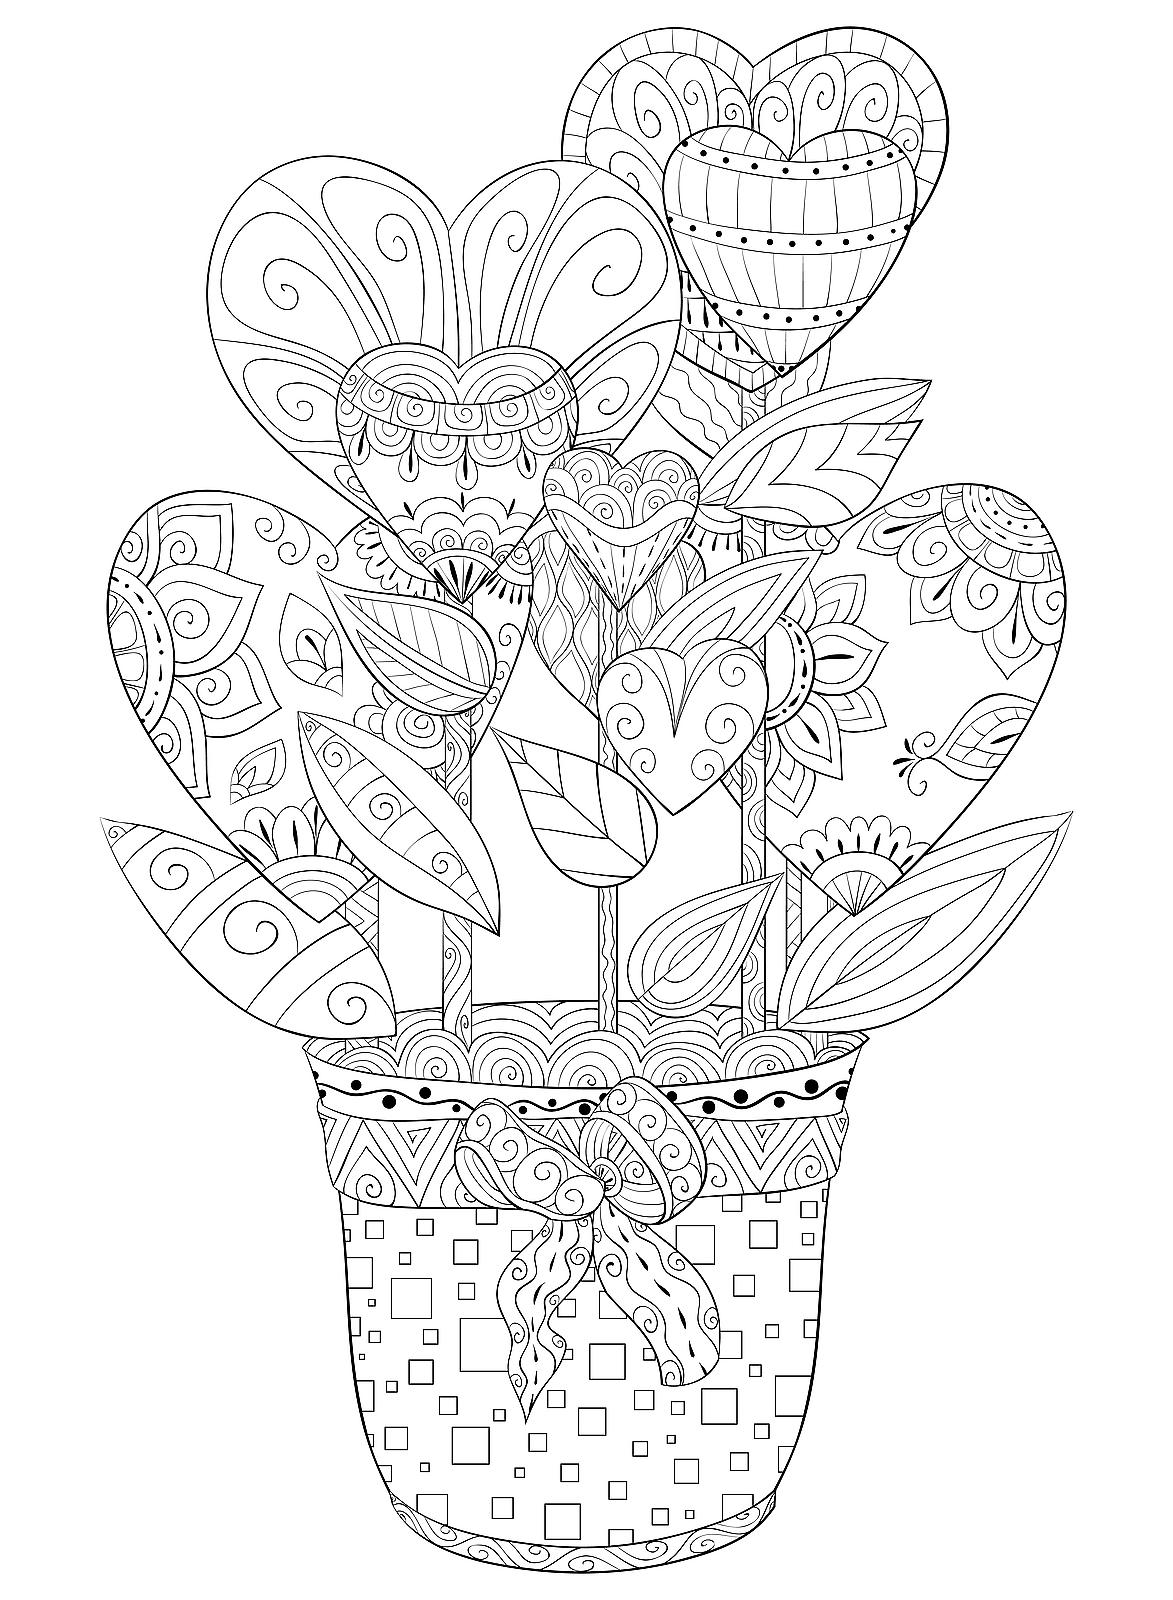 valentines day coloring pages free printable valentine39s day coloring pages heart love themed valentines day pages printable coloring free